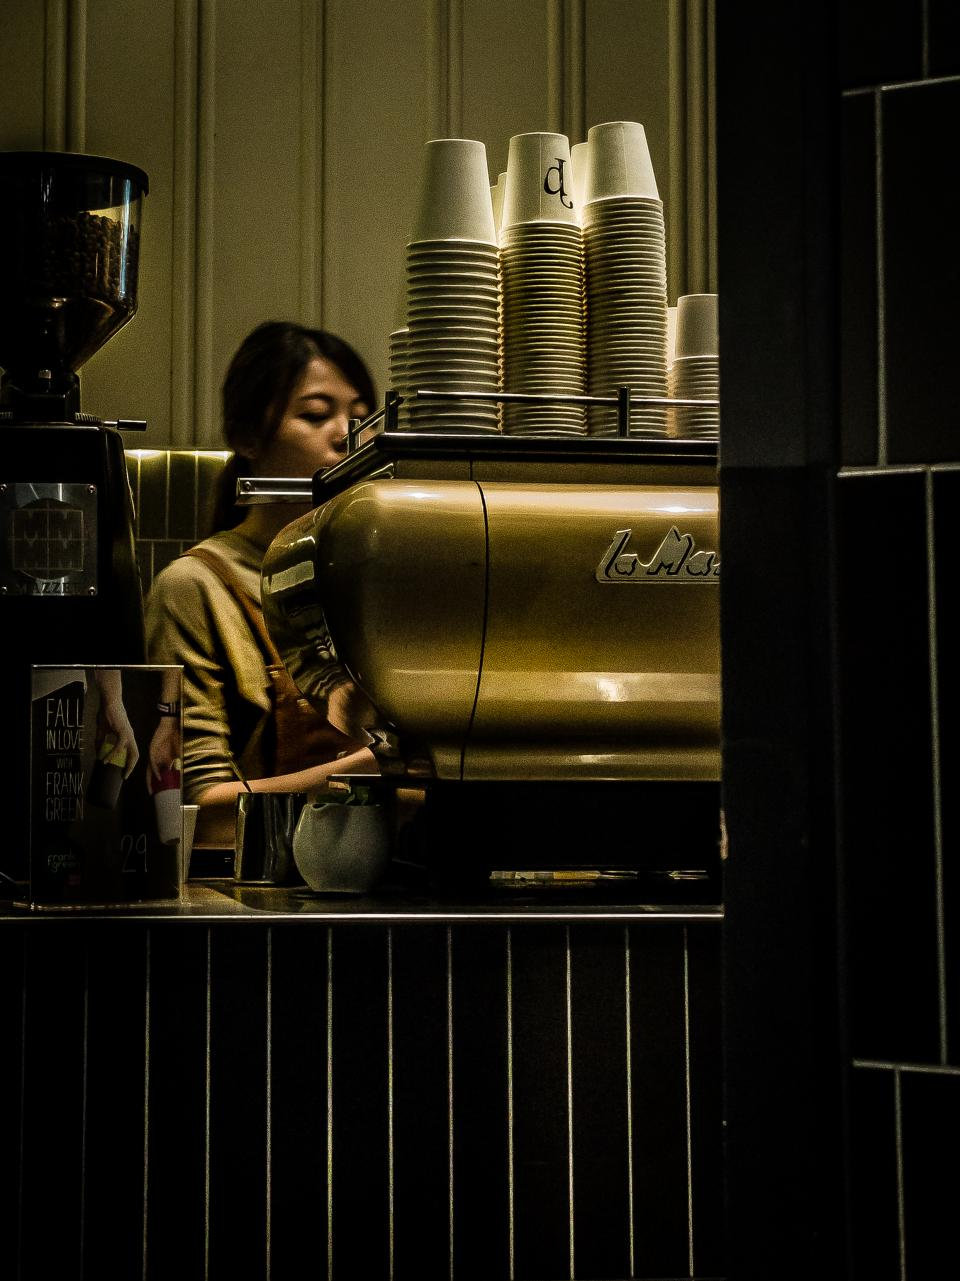 coffeehouse bar shop cafe espresso machine cups business store people girl barista